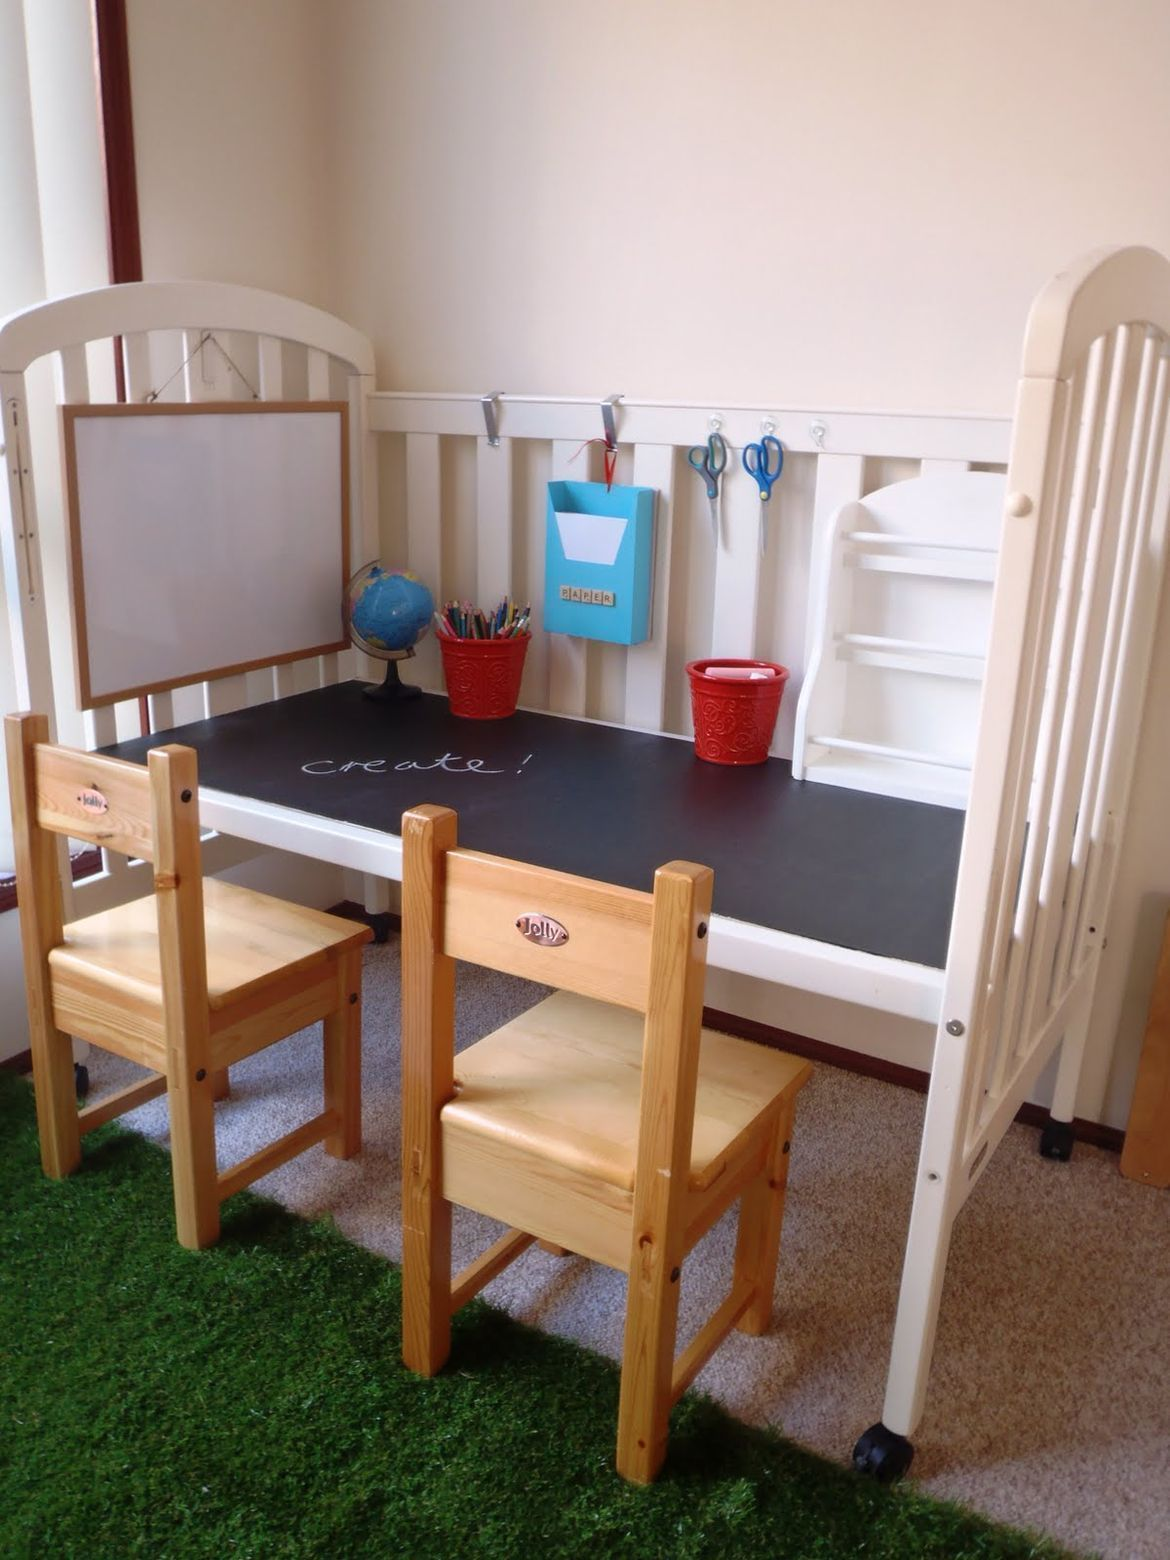 upcycled furnitures - turning the crib into a play or homework desk